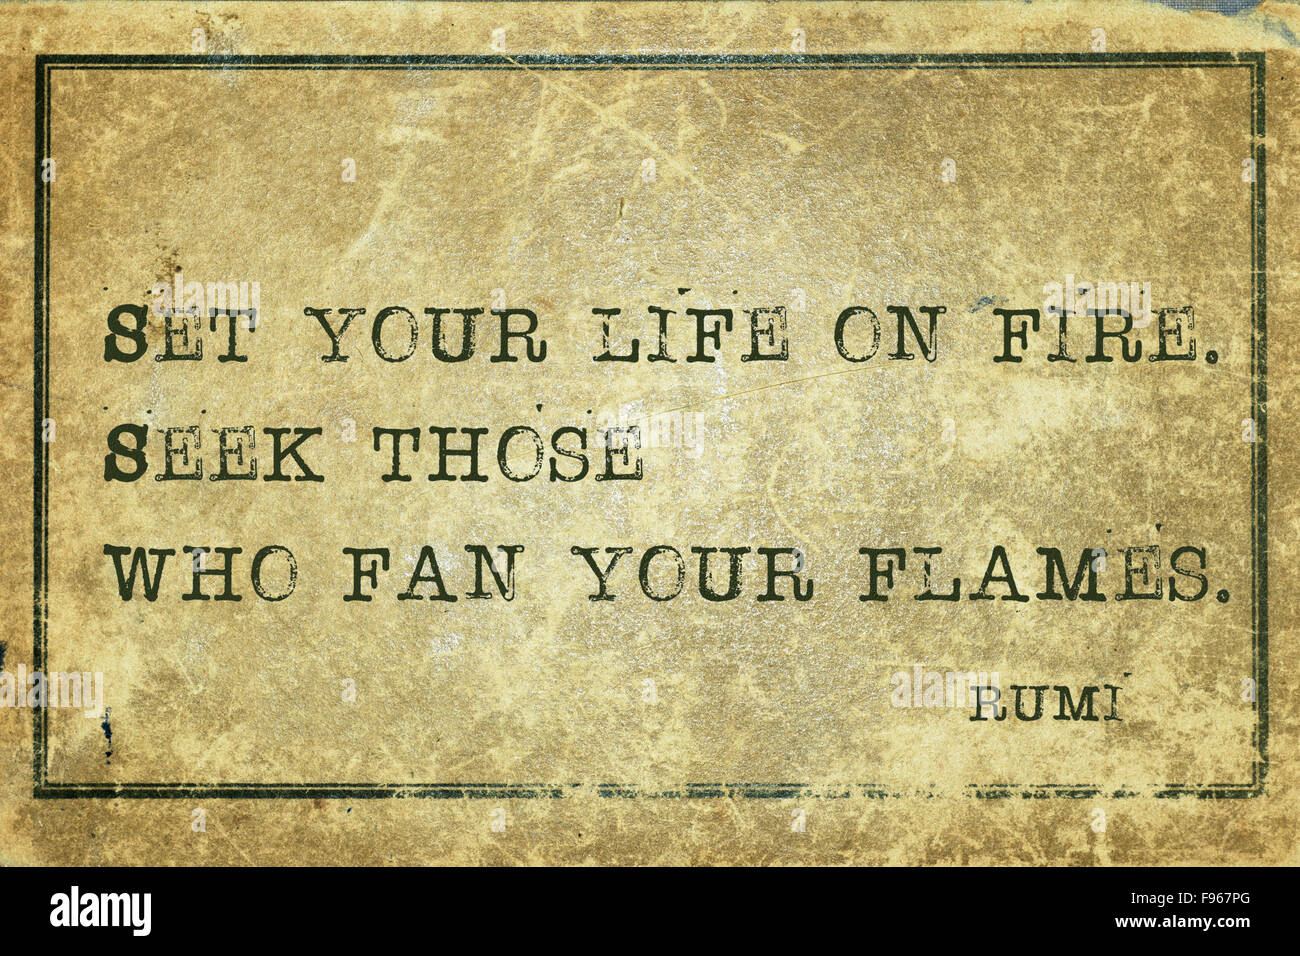 Rumi Quote Set Your Life On Fire  Ancient Persian Poet And Philosopher Rumi